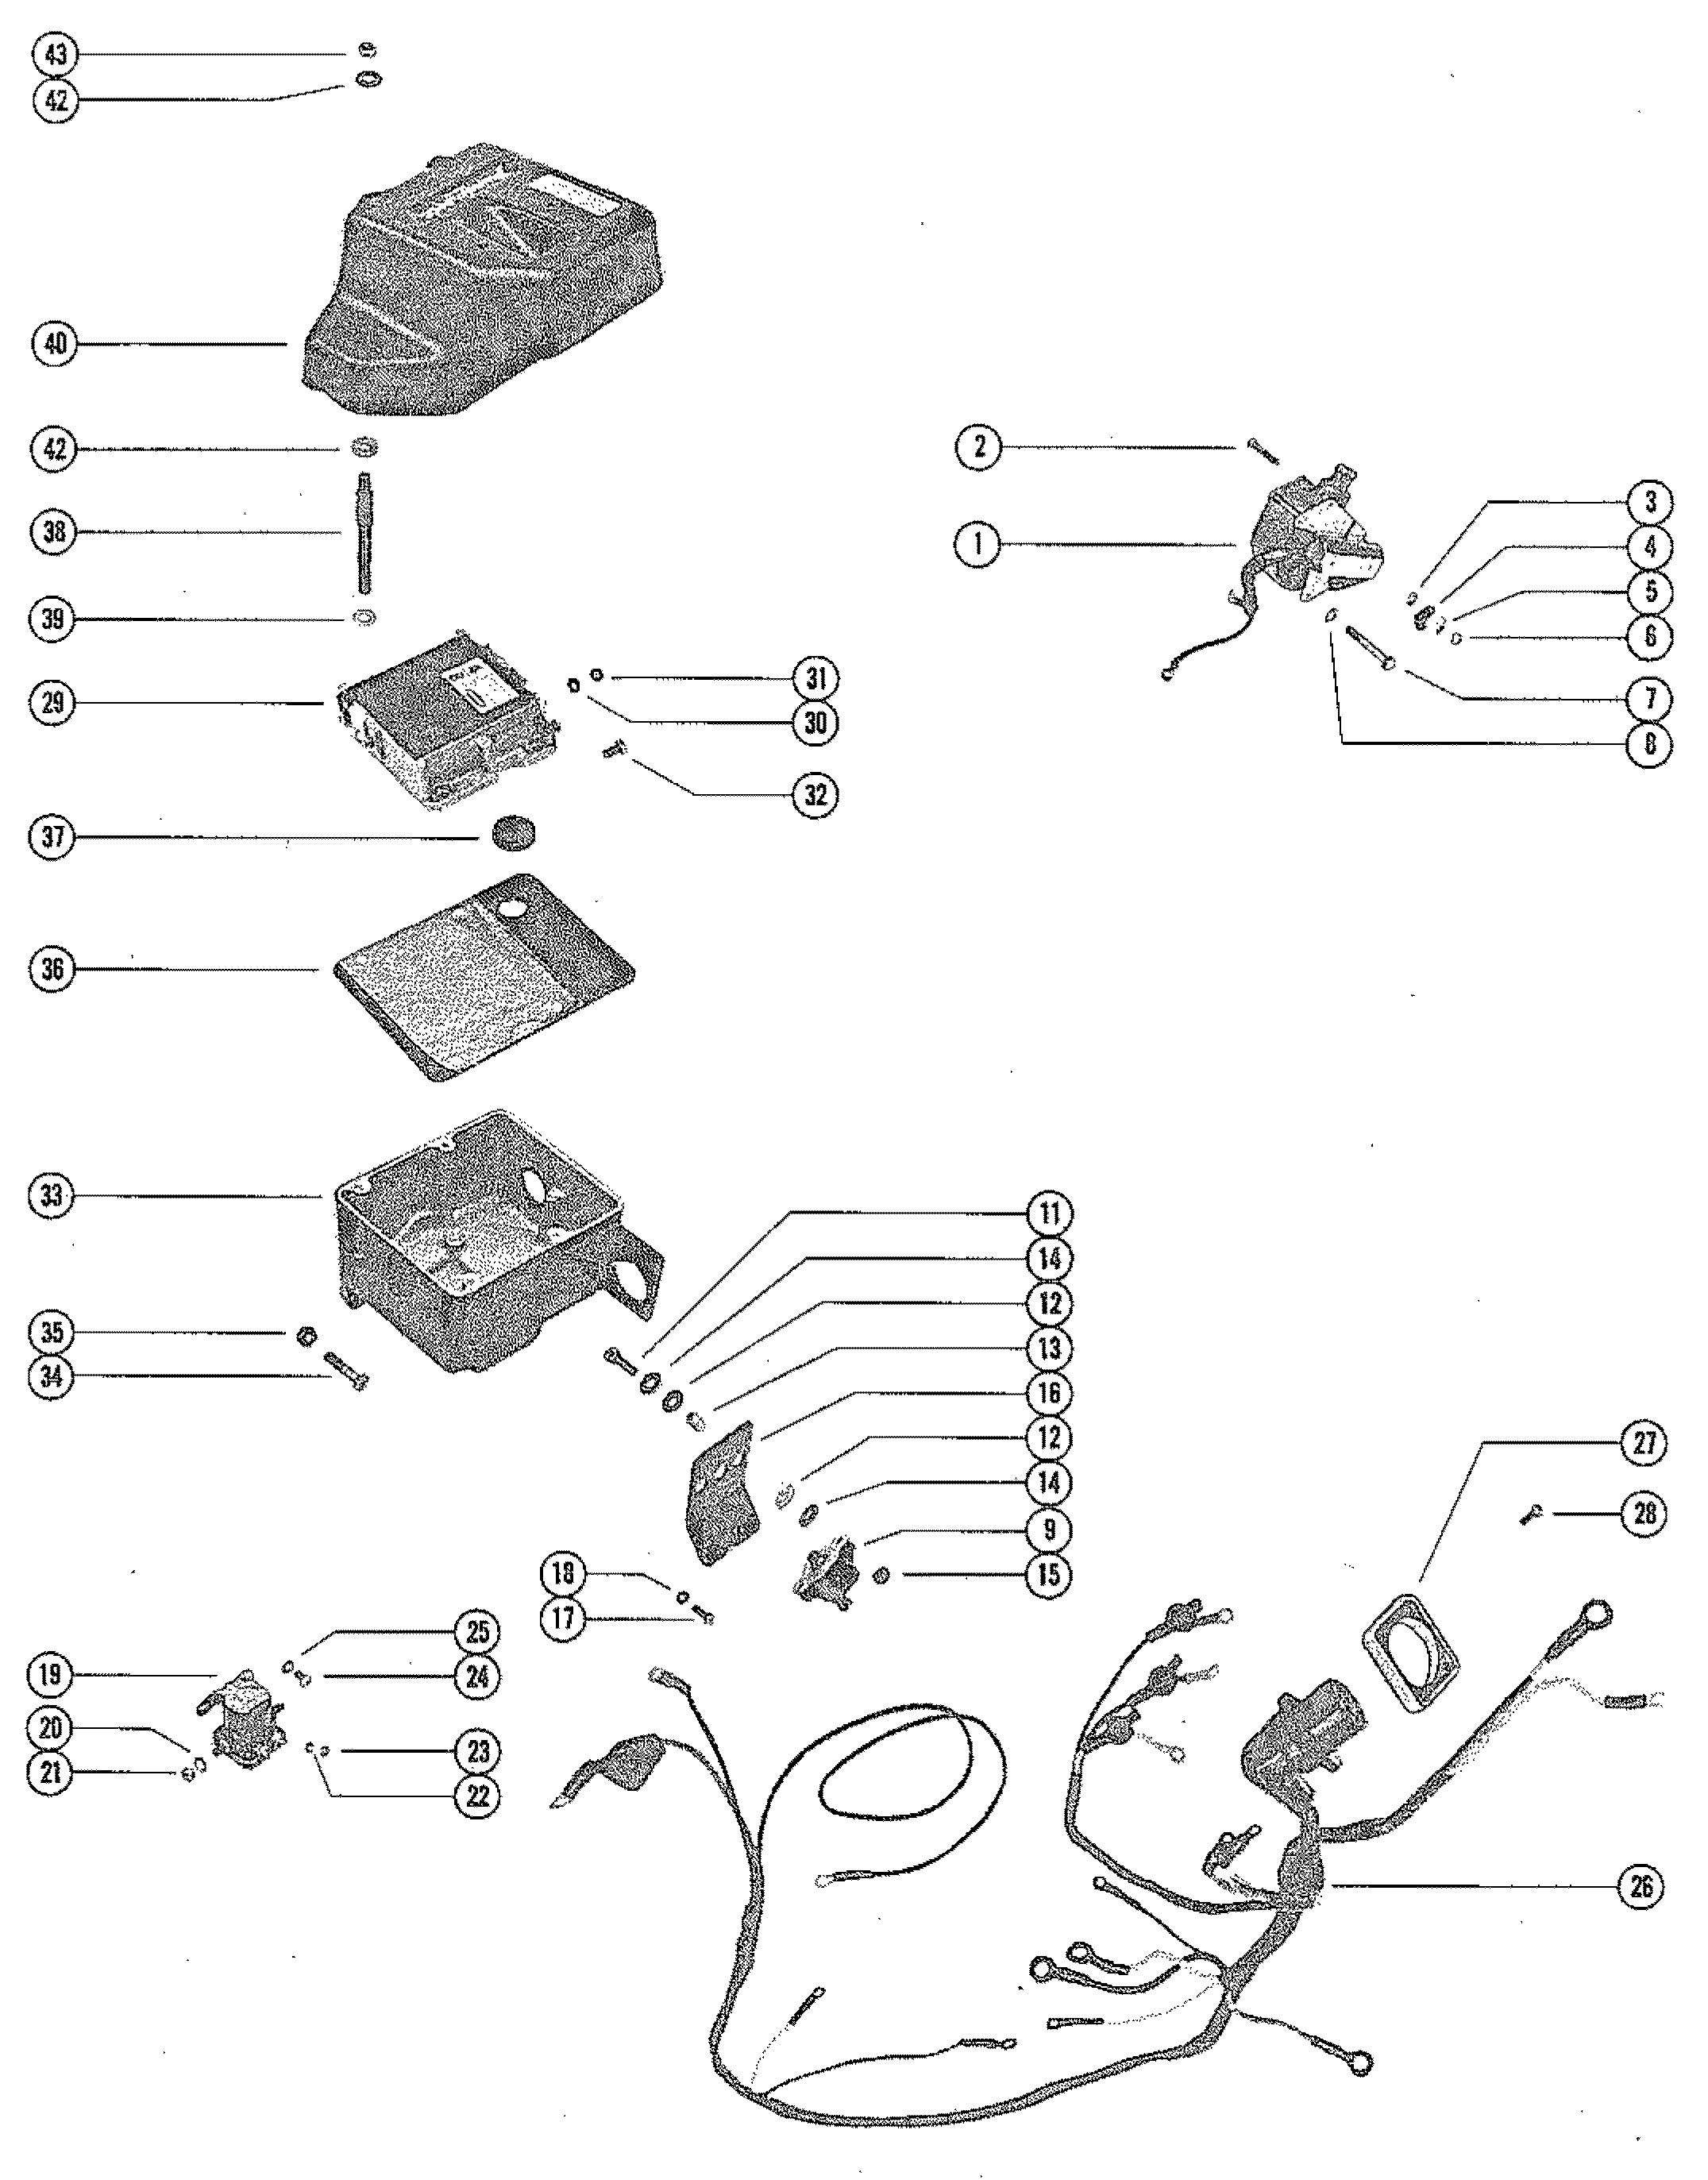 Ignition Coil Resistor In Circuit